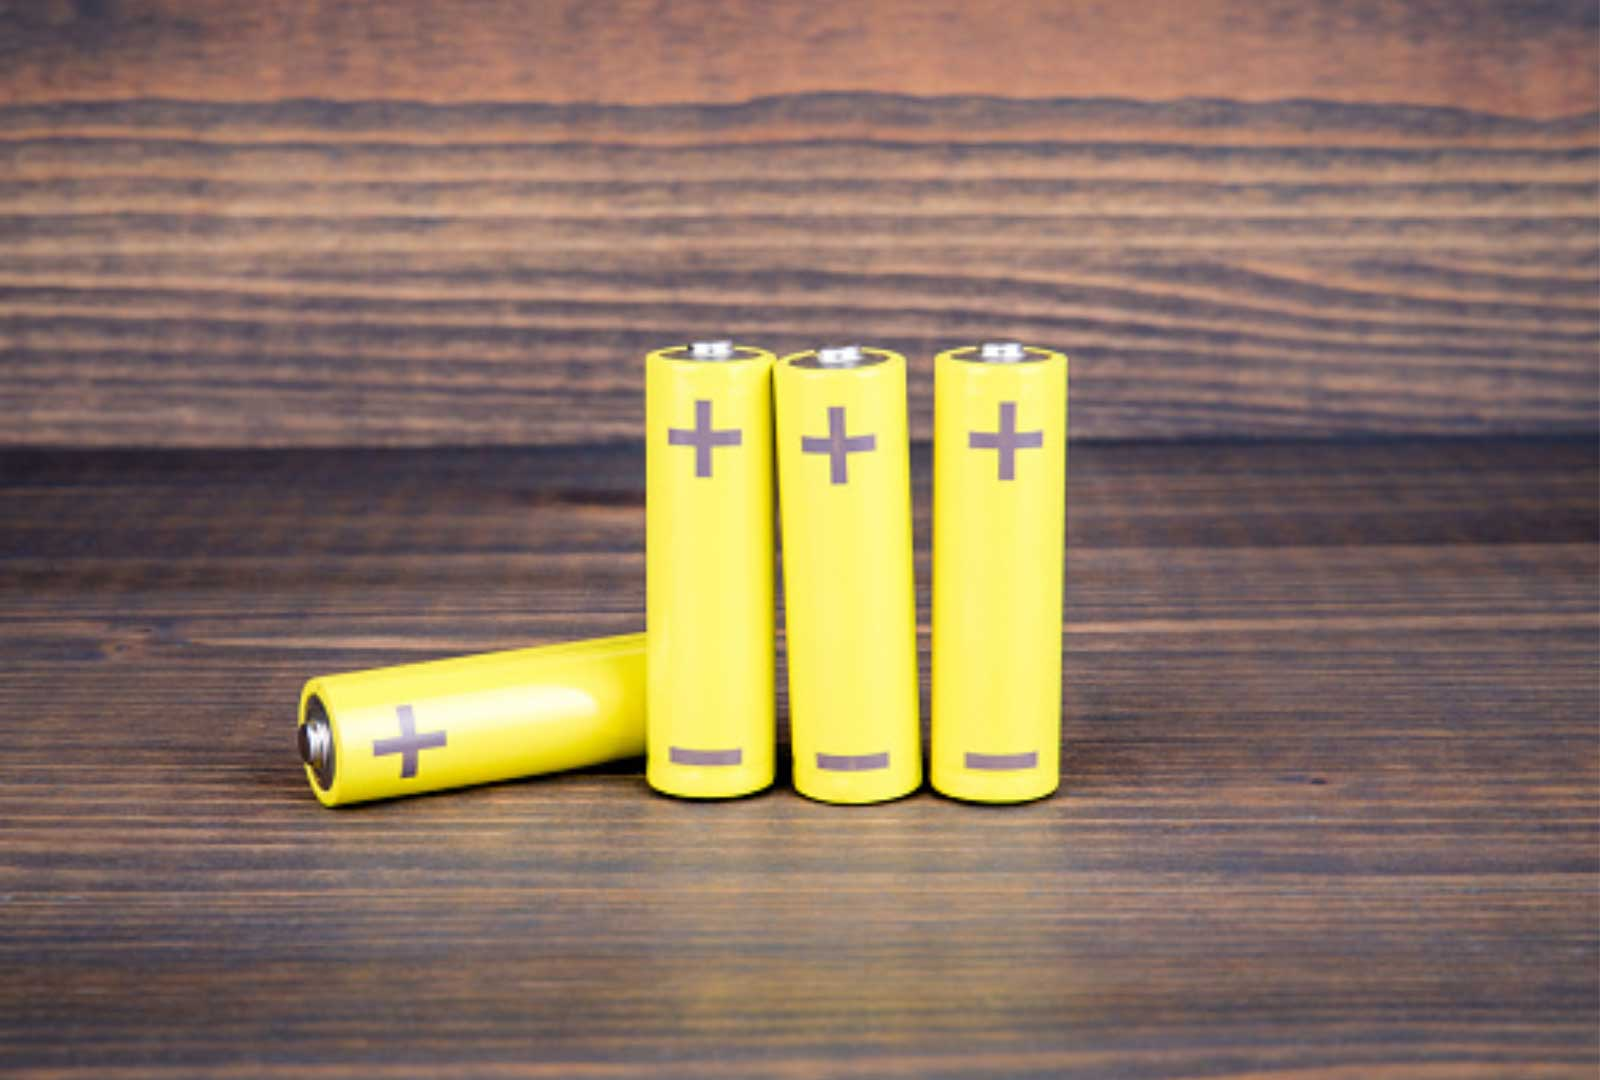 small aaa batteries